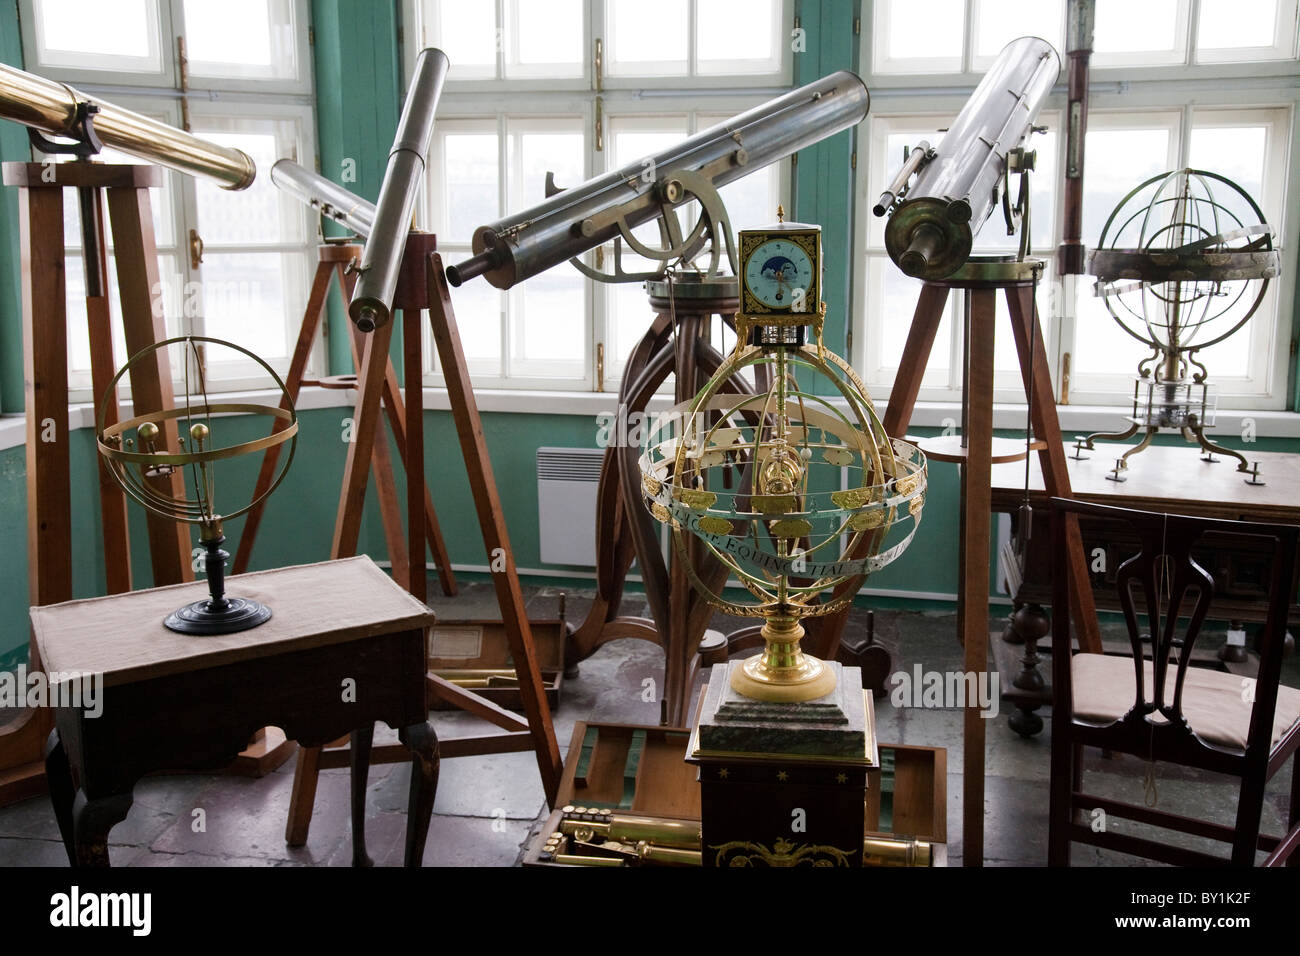 Russia, St Petersburg.  Instruments of astronomy, in the observatory of the Kunstkamera Museum.  St Petersburg, - Stock Image